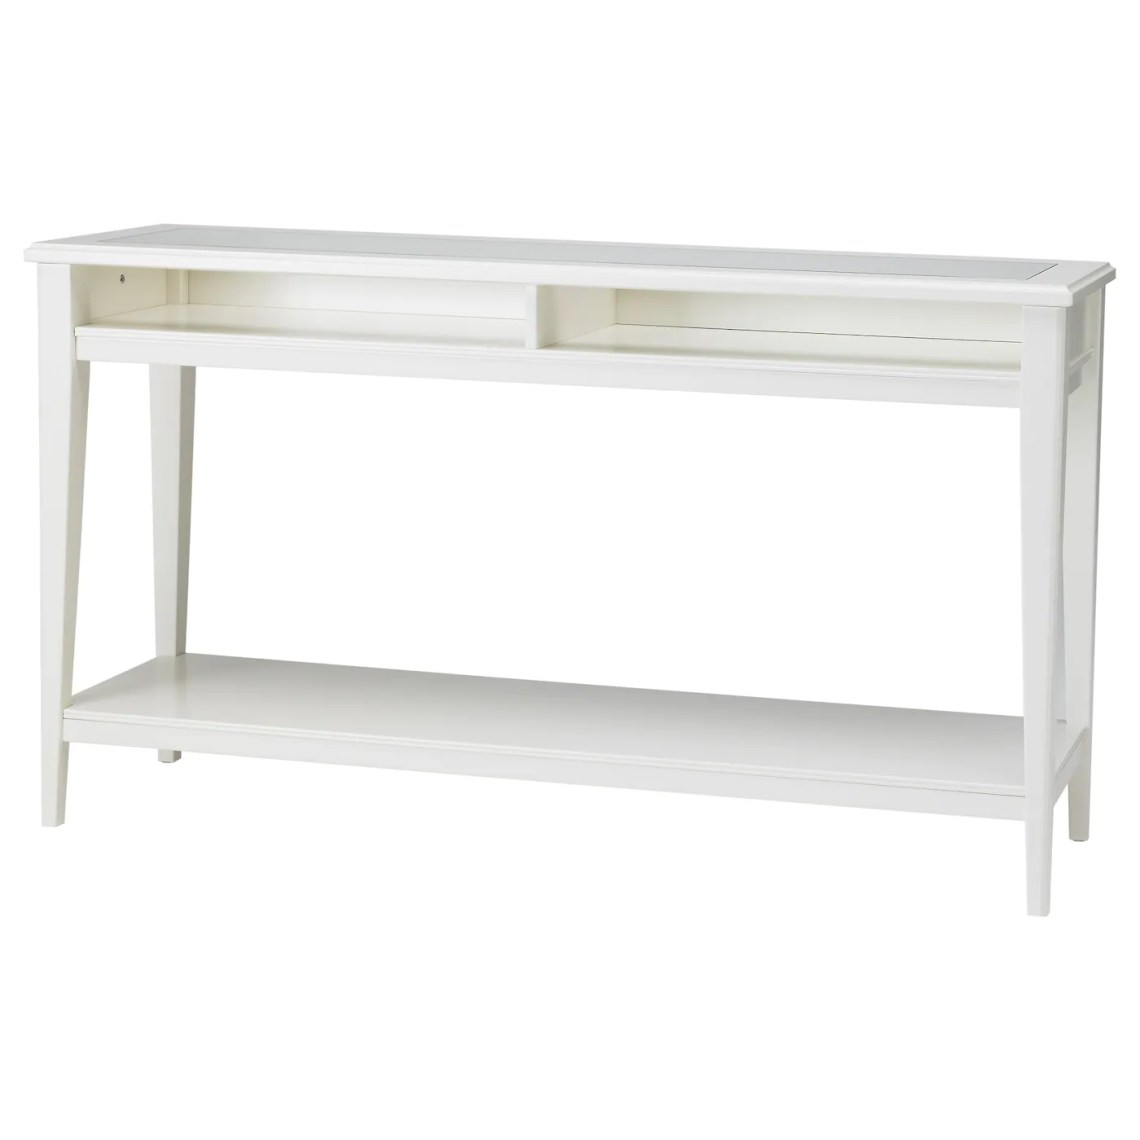 Image Result For Slim White Console Table